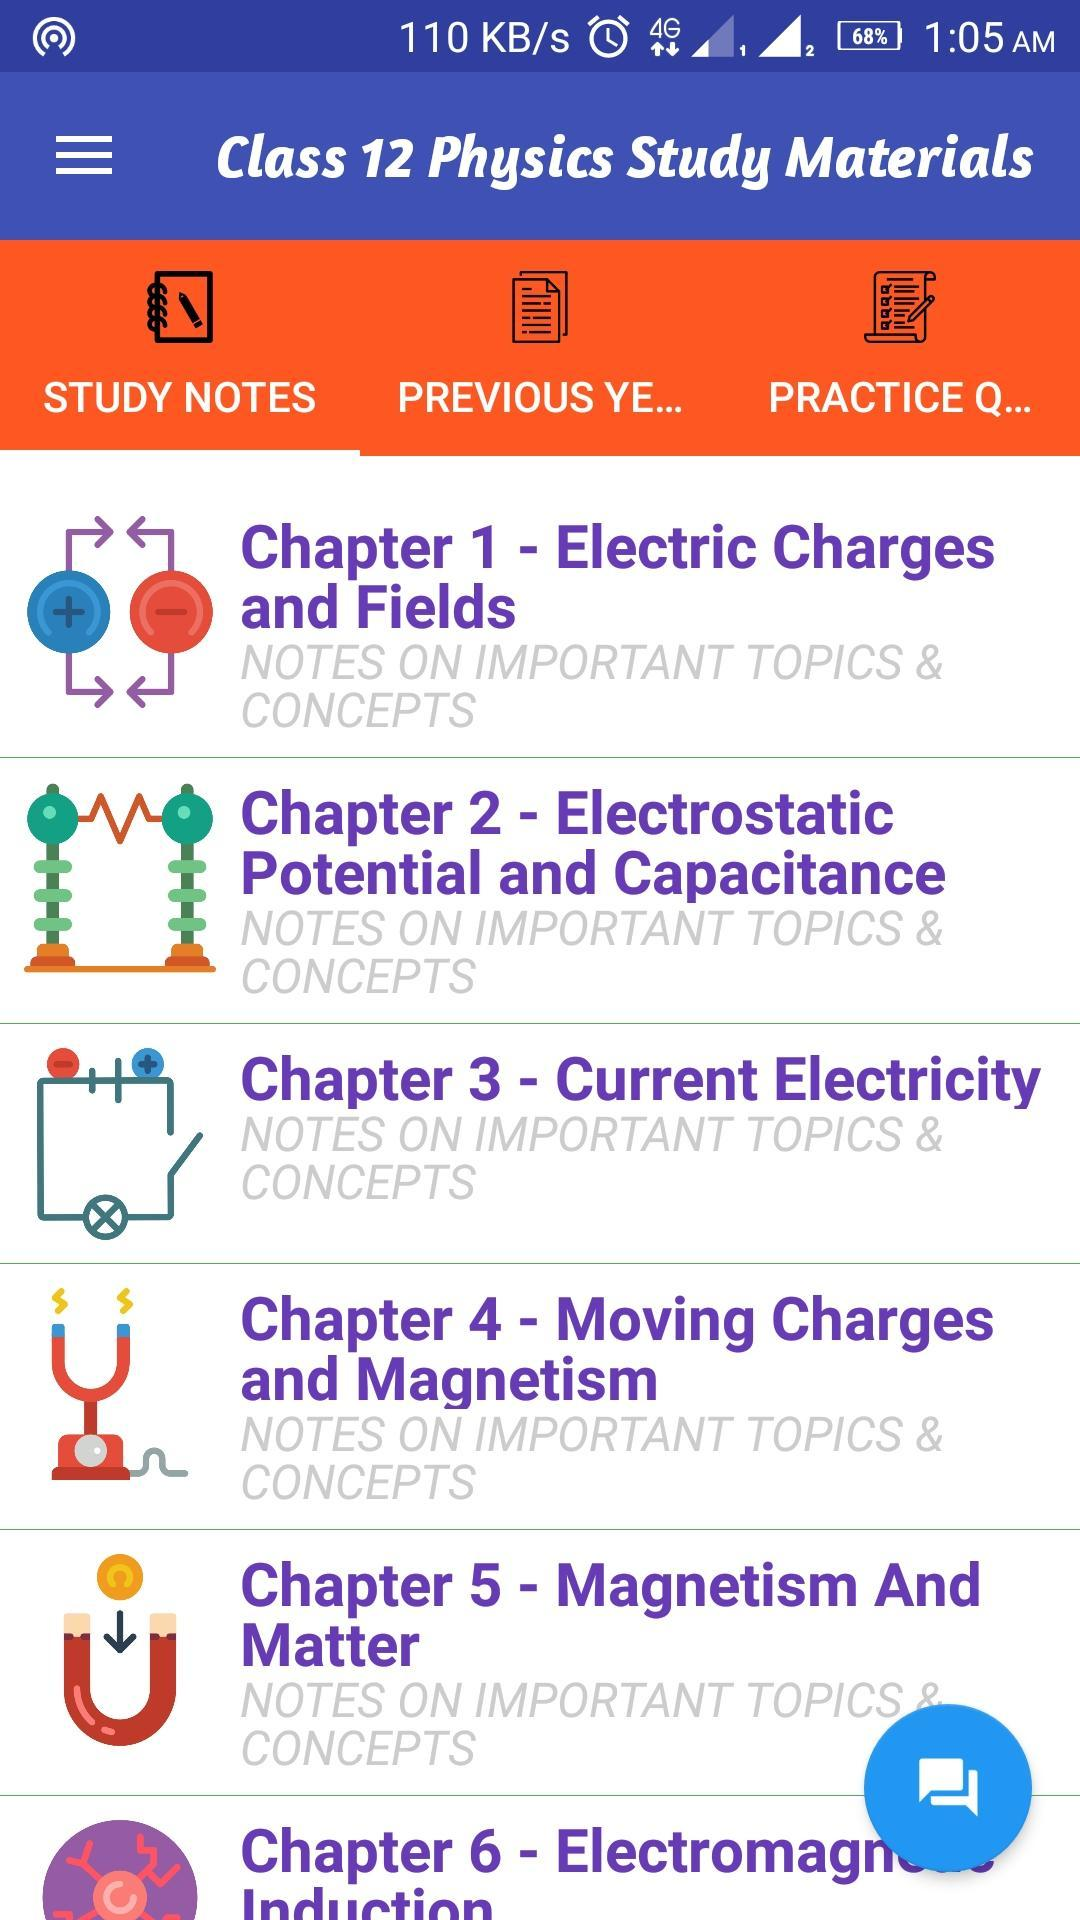 Class 12 Physics Study Materials & Notes 2018-19 for Android - APK